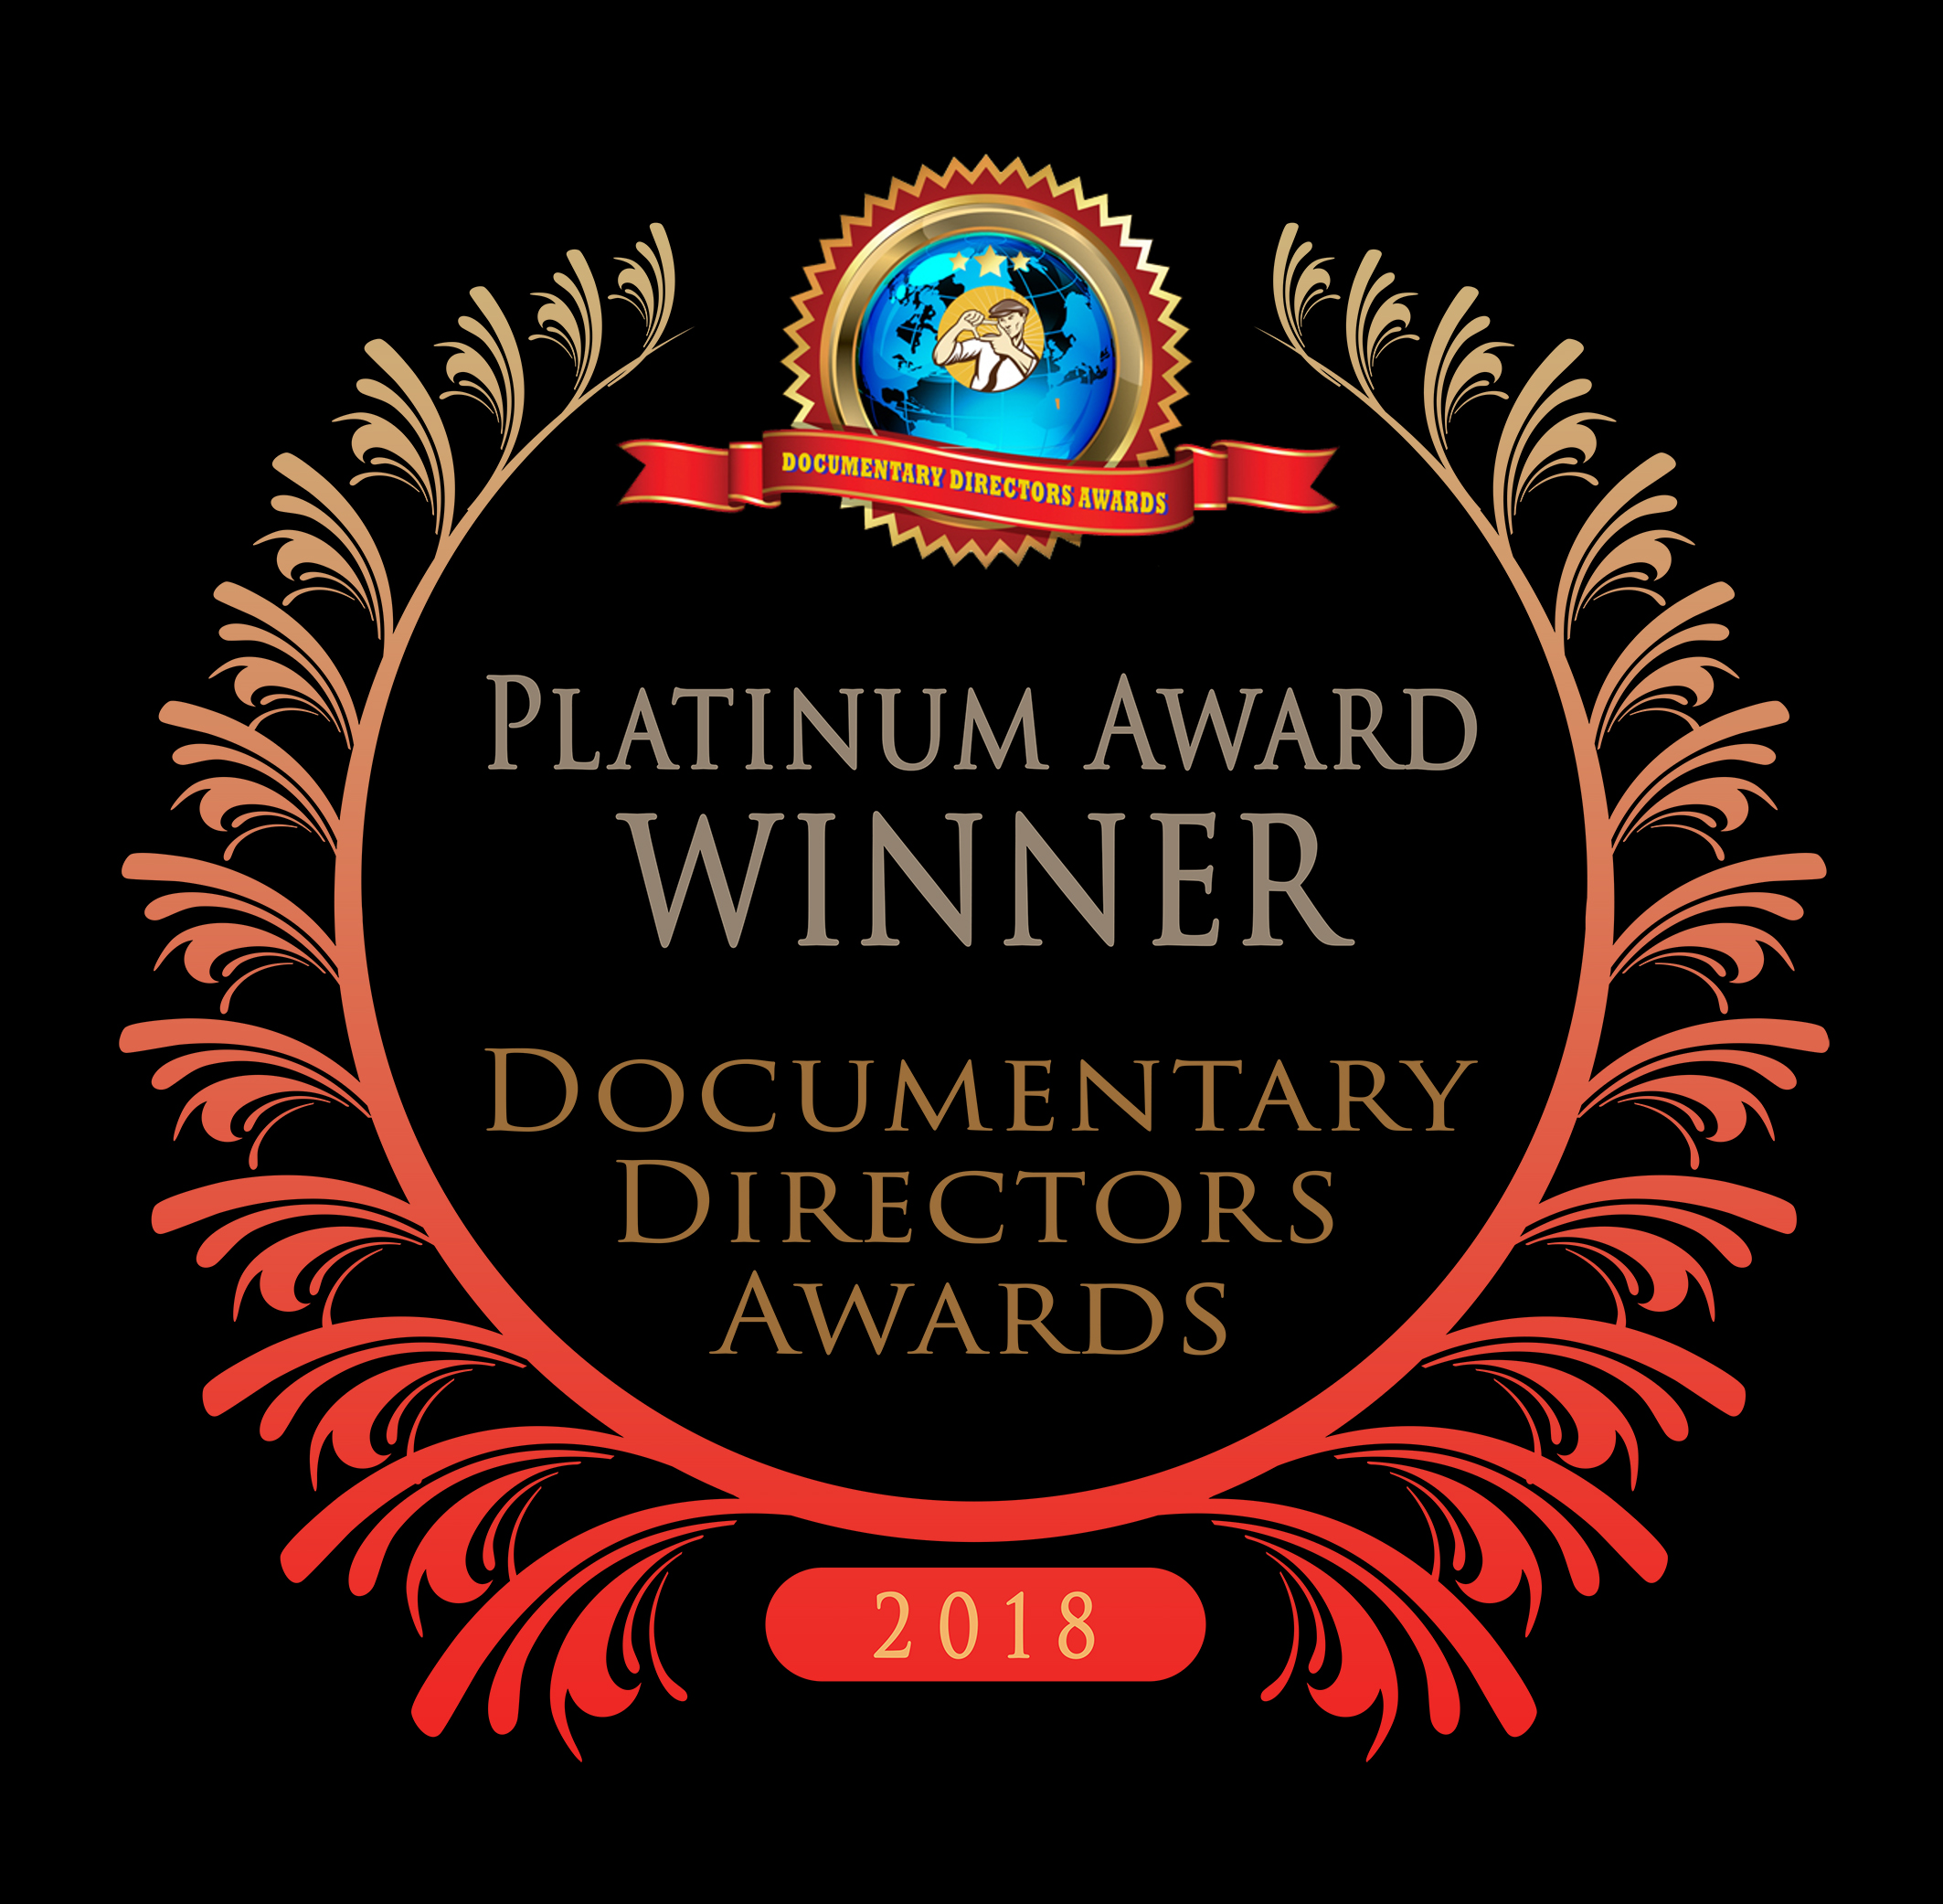 Documentary-Director-Awards_Platinum_Award.jpg